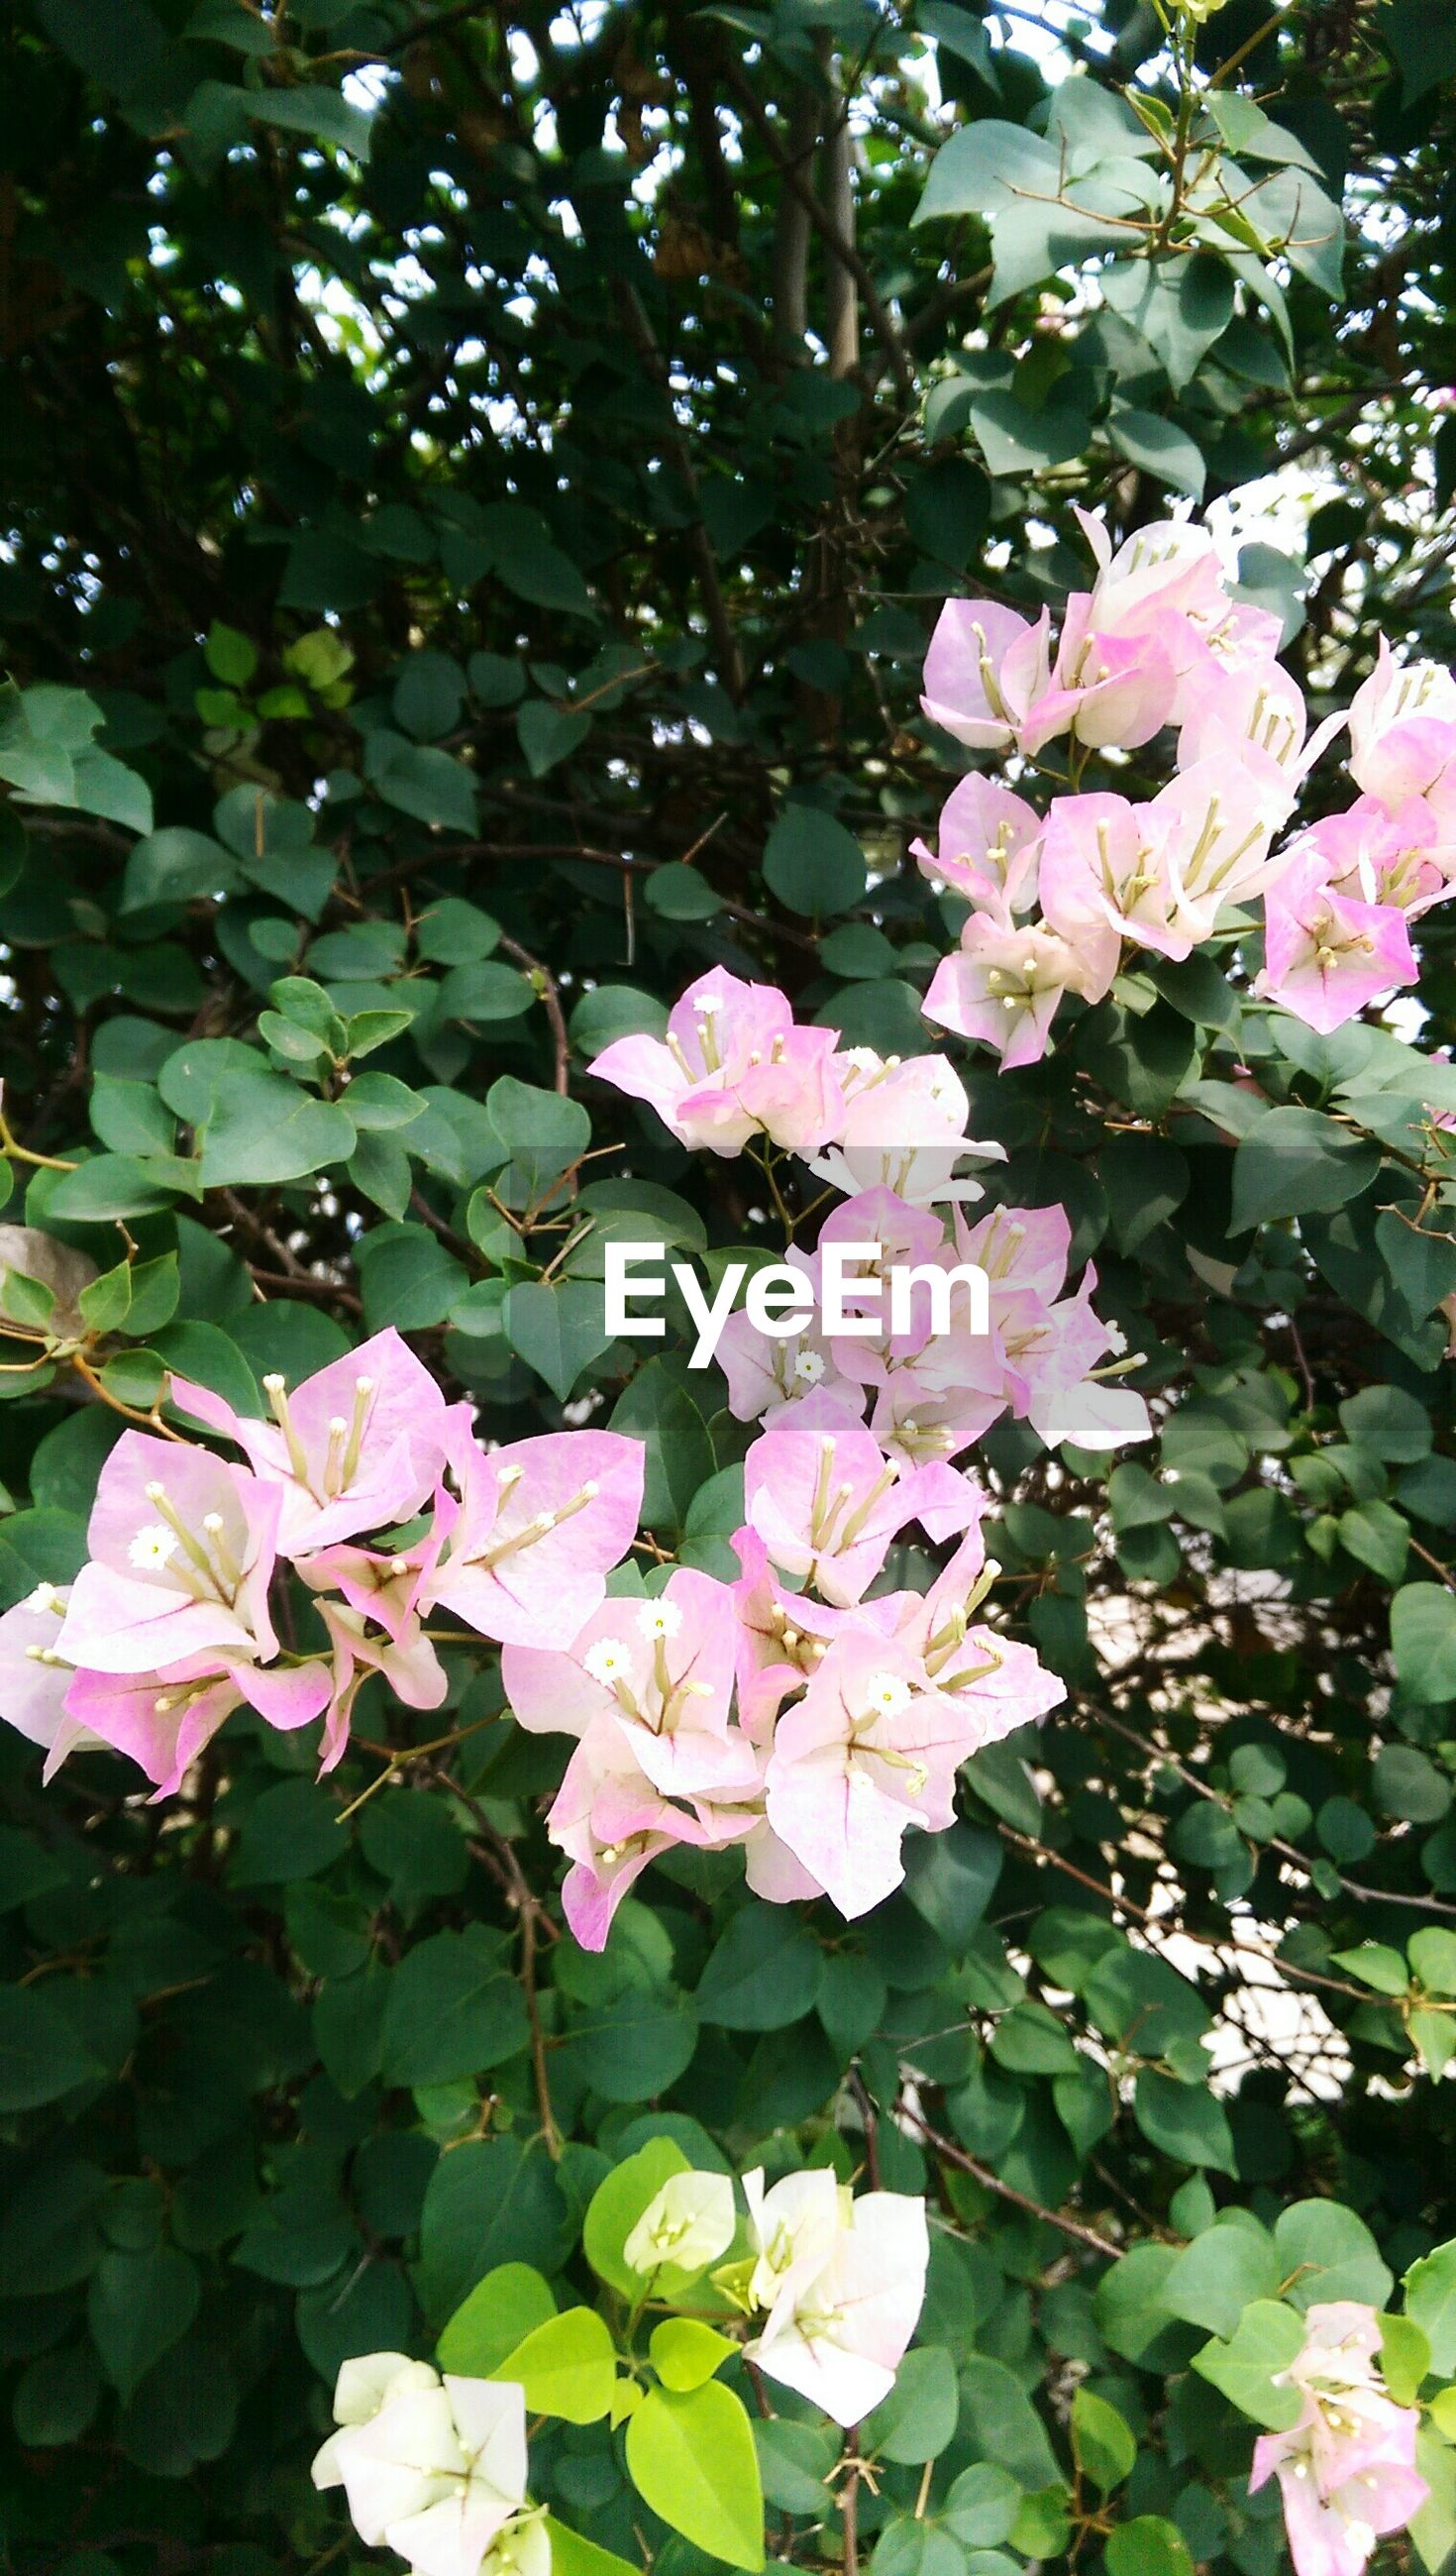 flower, freshness, petal, leaf, fragility, growth, beauty in nature, pink color, flower head, nature, blooming, plant, close-up, in bloom, green color, blossom, park - man made space, outdoors, day, no people